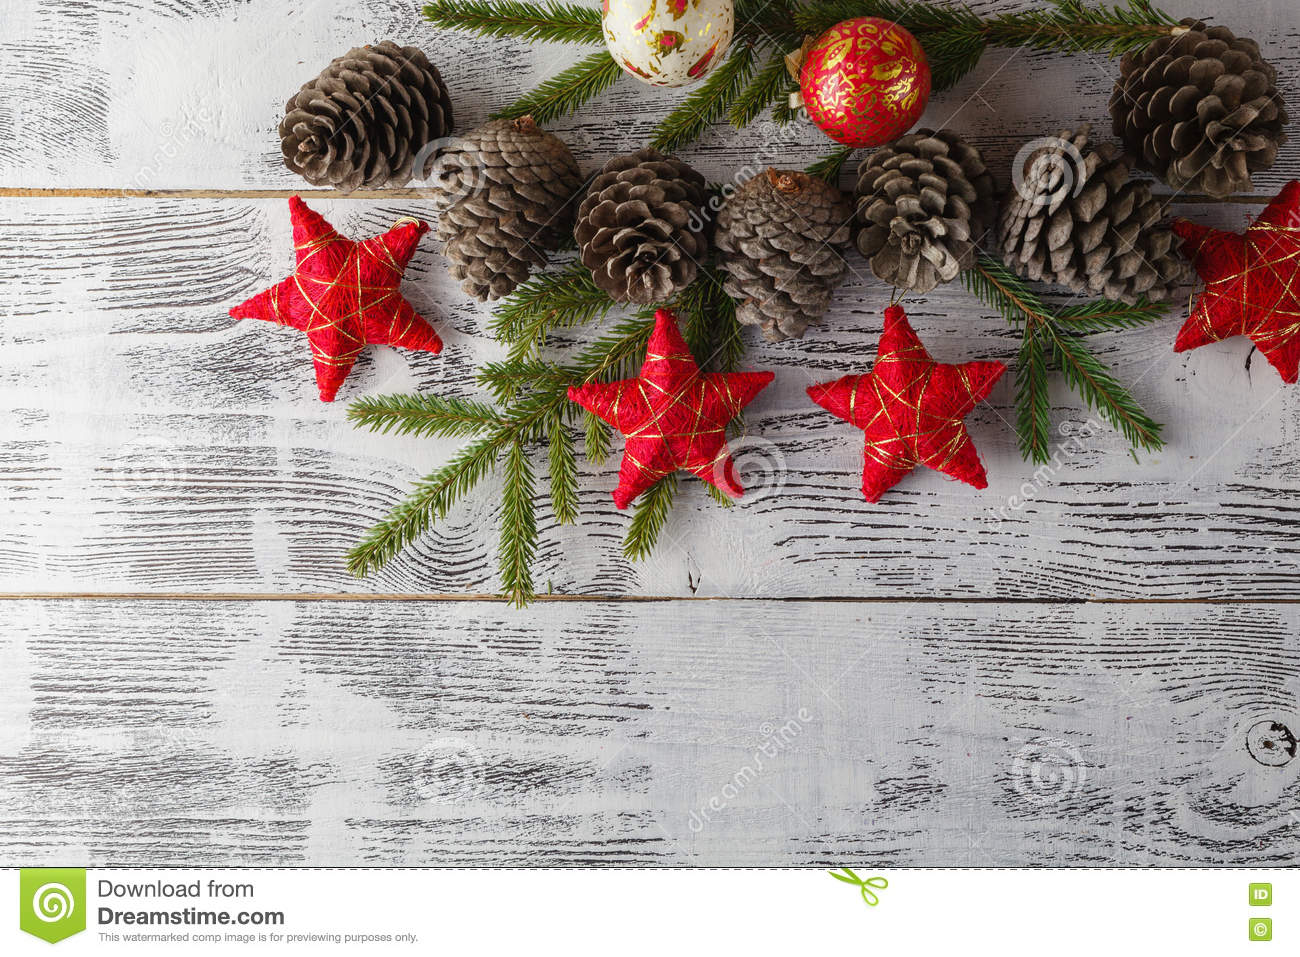 Christmas garland on rustic wooden background with copy